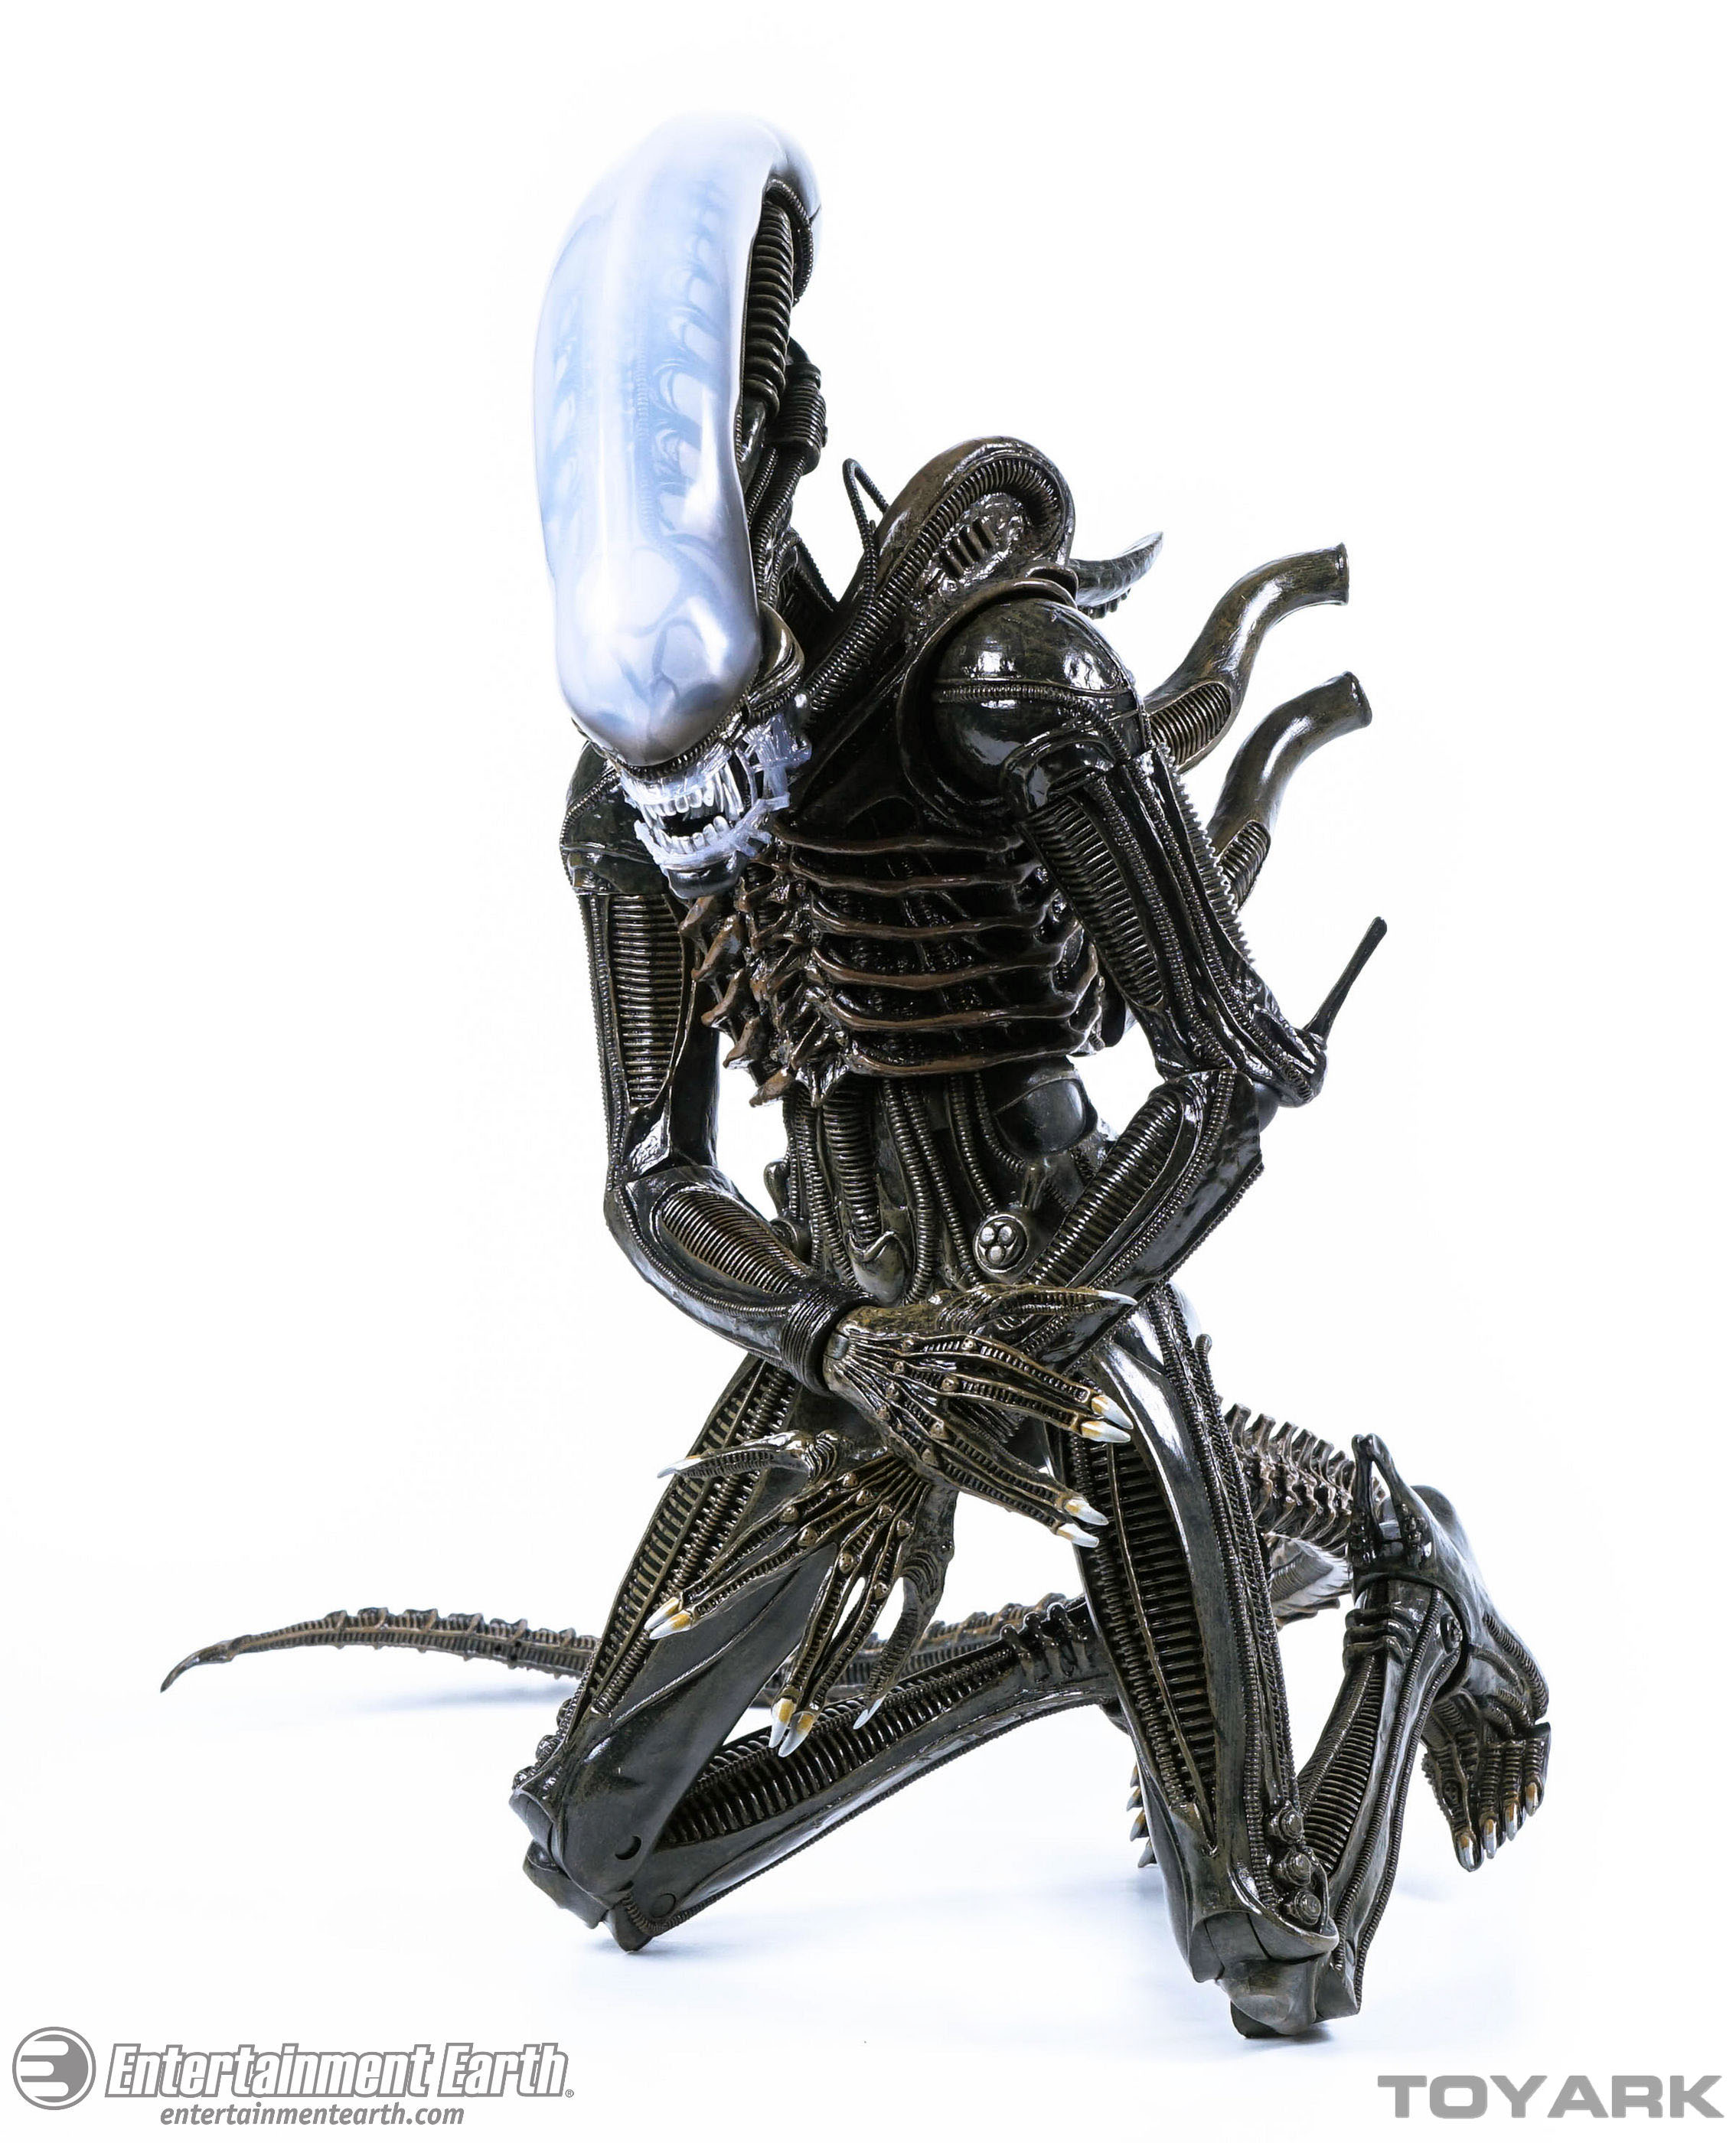 http://news.toyark.com/wp-content/uploads/sites/4/2016/01/NECA-Quarter-Scale-Big-Chap-Alien-040.jpg